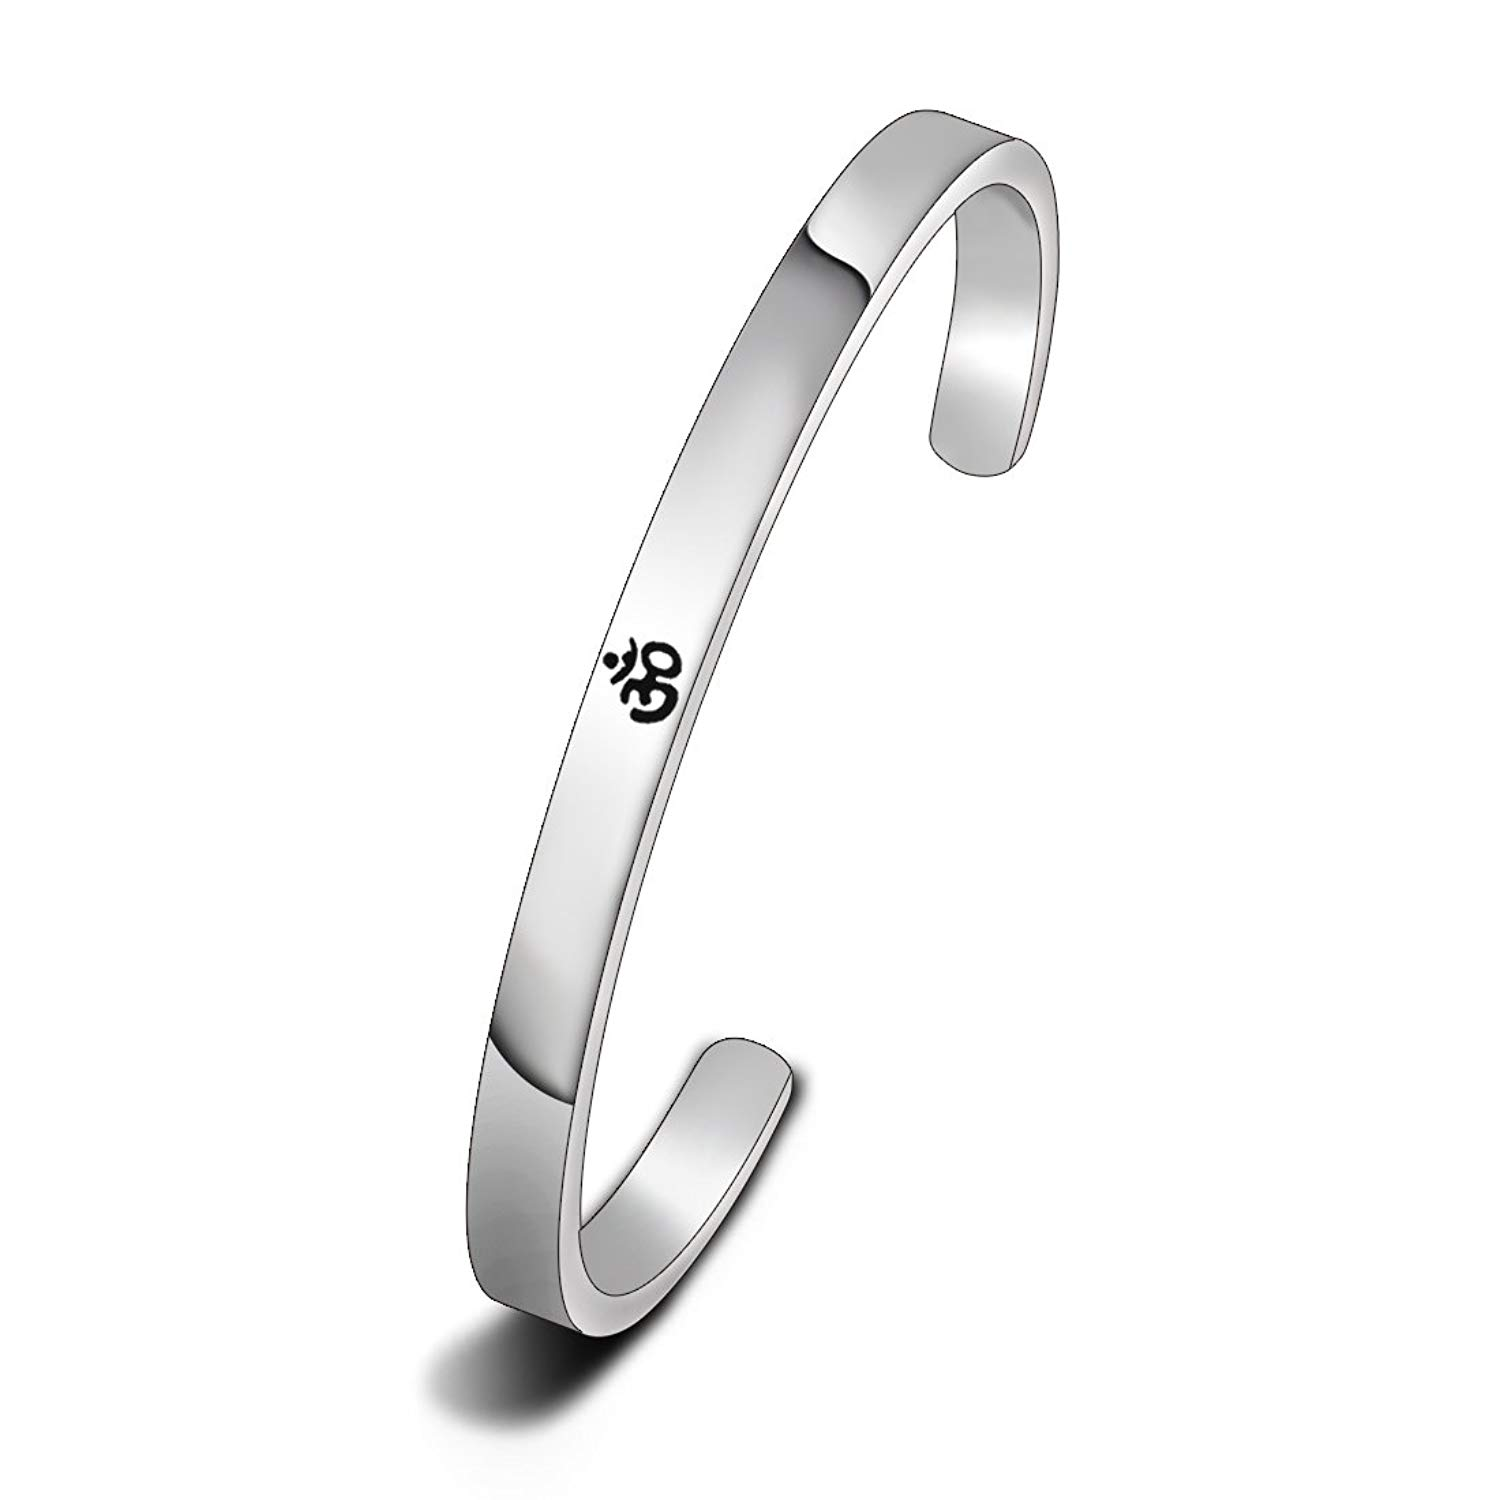 1d6f3631eb87ac Get Quotations · WUSUANED Yoga Jewelry Stainless Steel Aum Ohm Om Cuff  Bracelet Meditation Gift